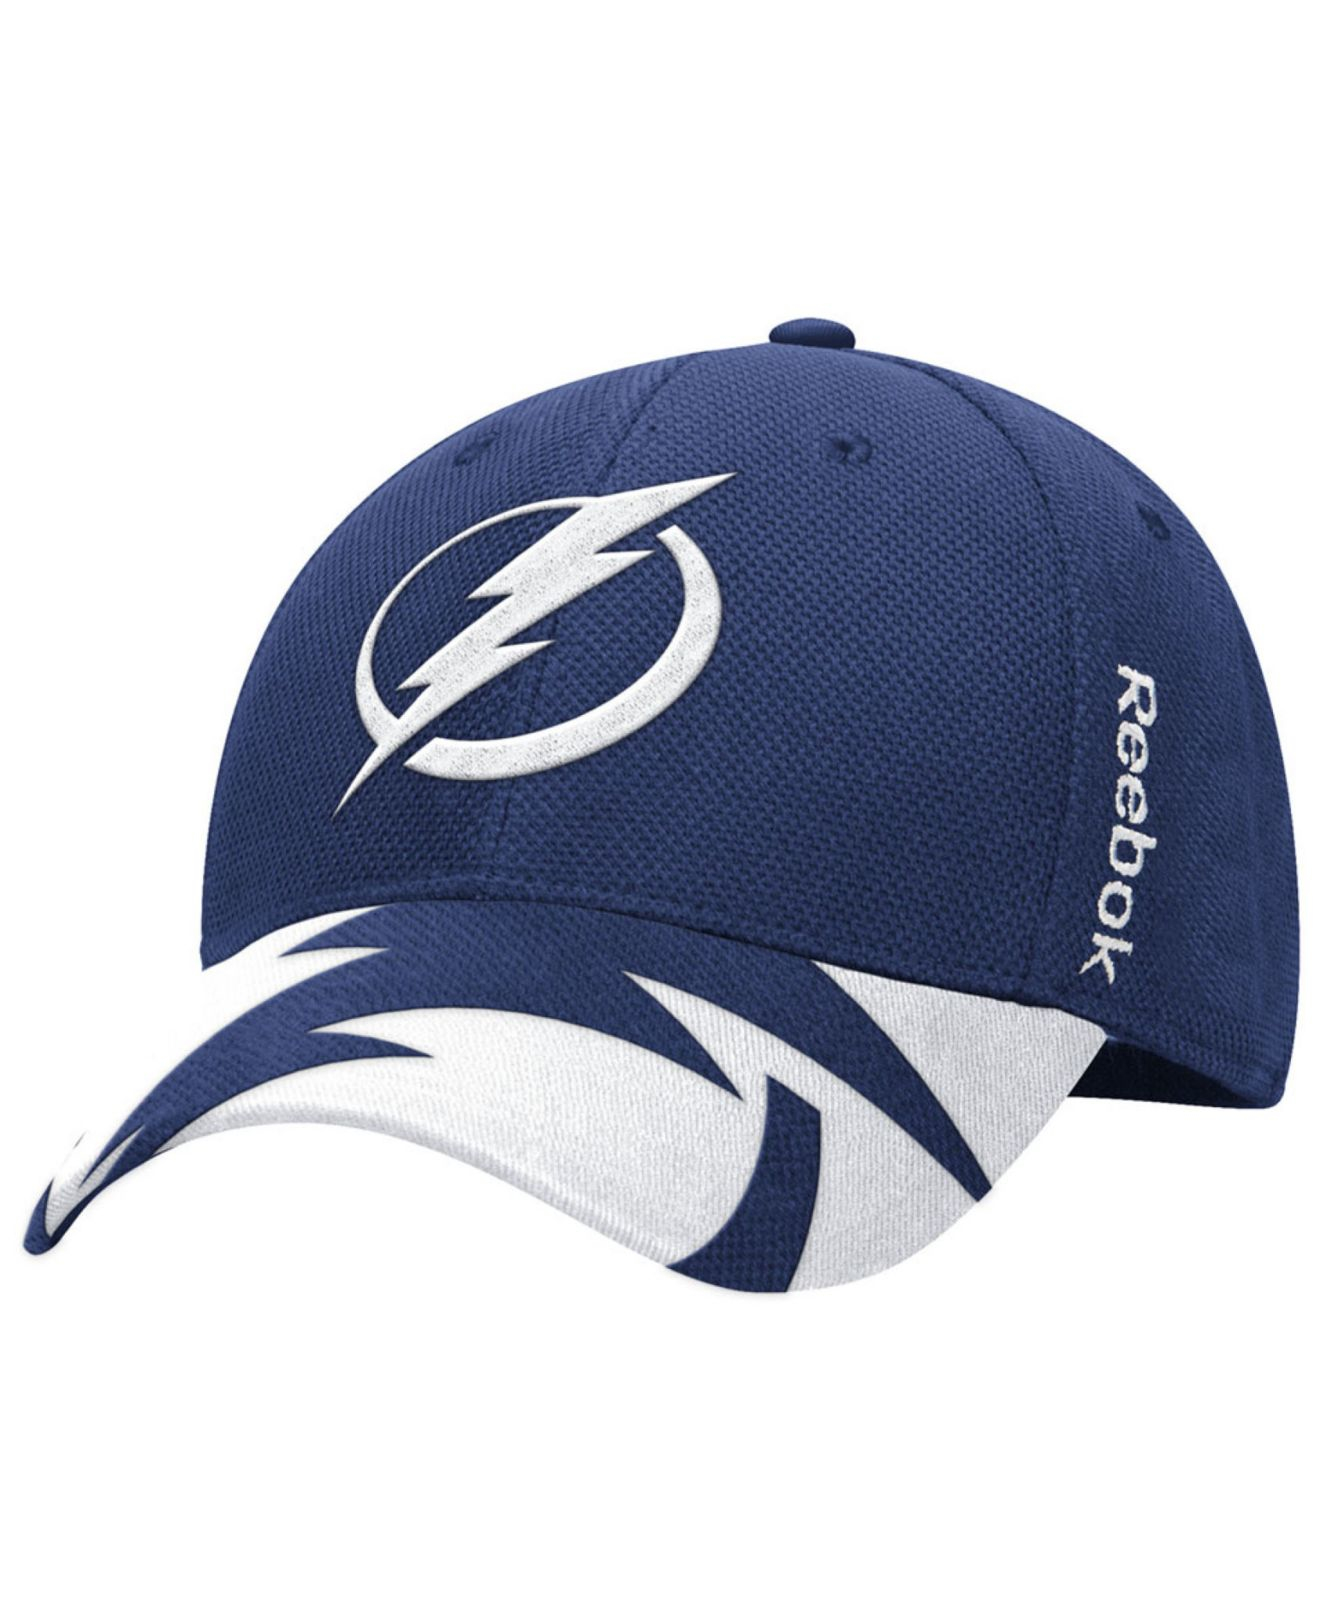 2a5416a4f3b Lyst - Reebok Tampa Bay Lightning Nhl 2015 Draft Flex Cap in White ...